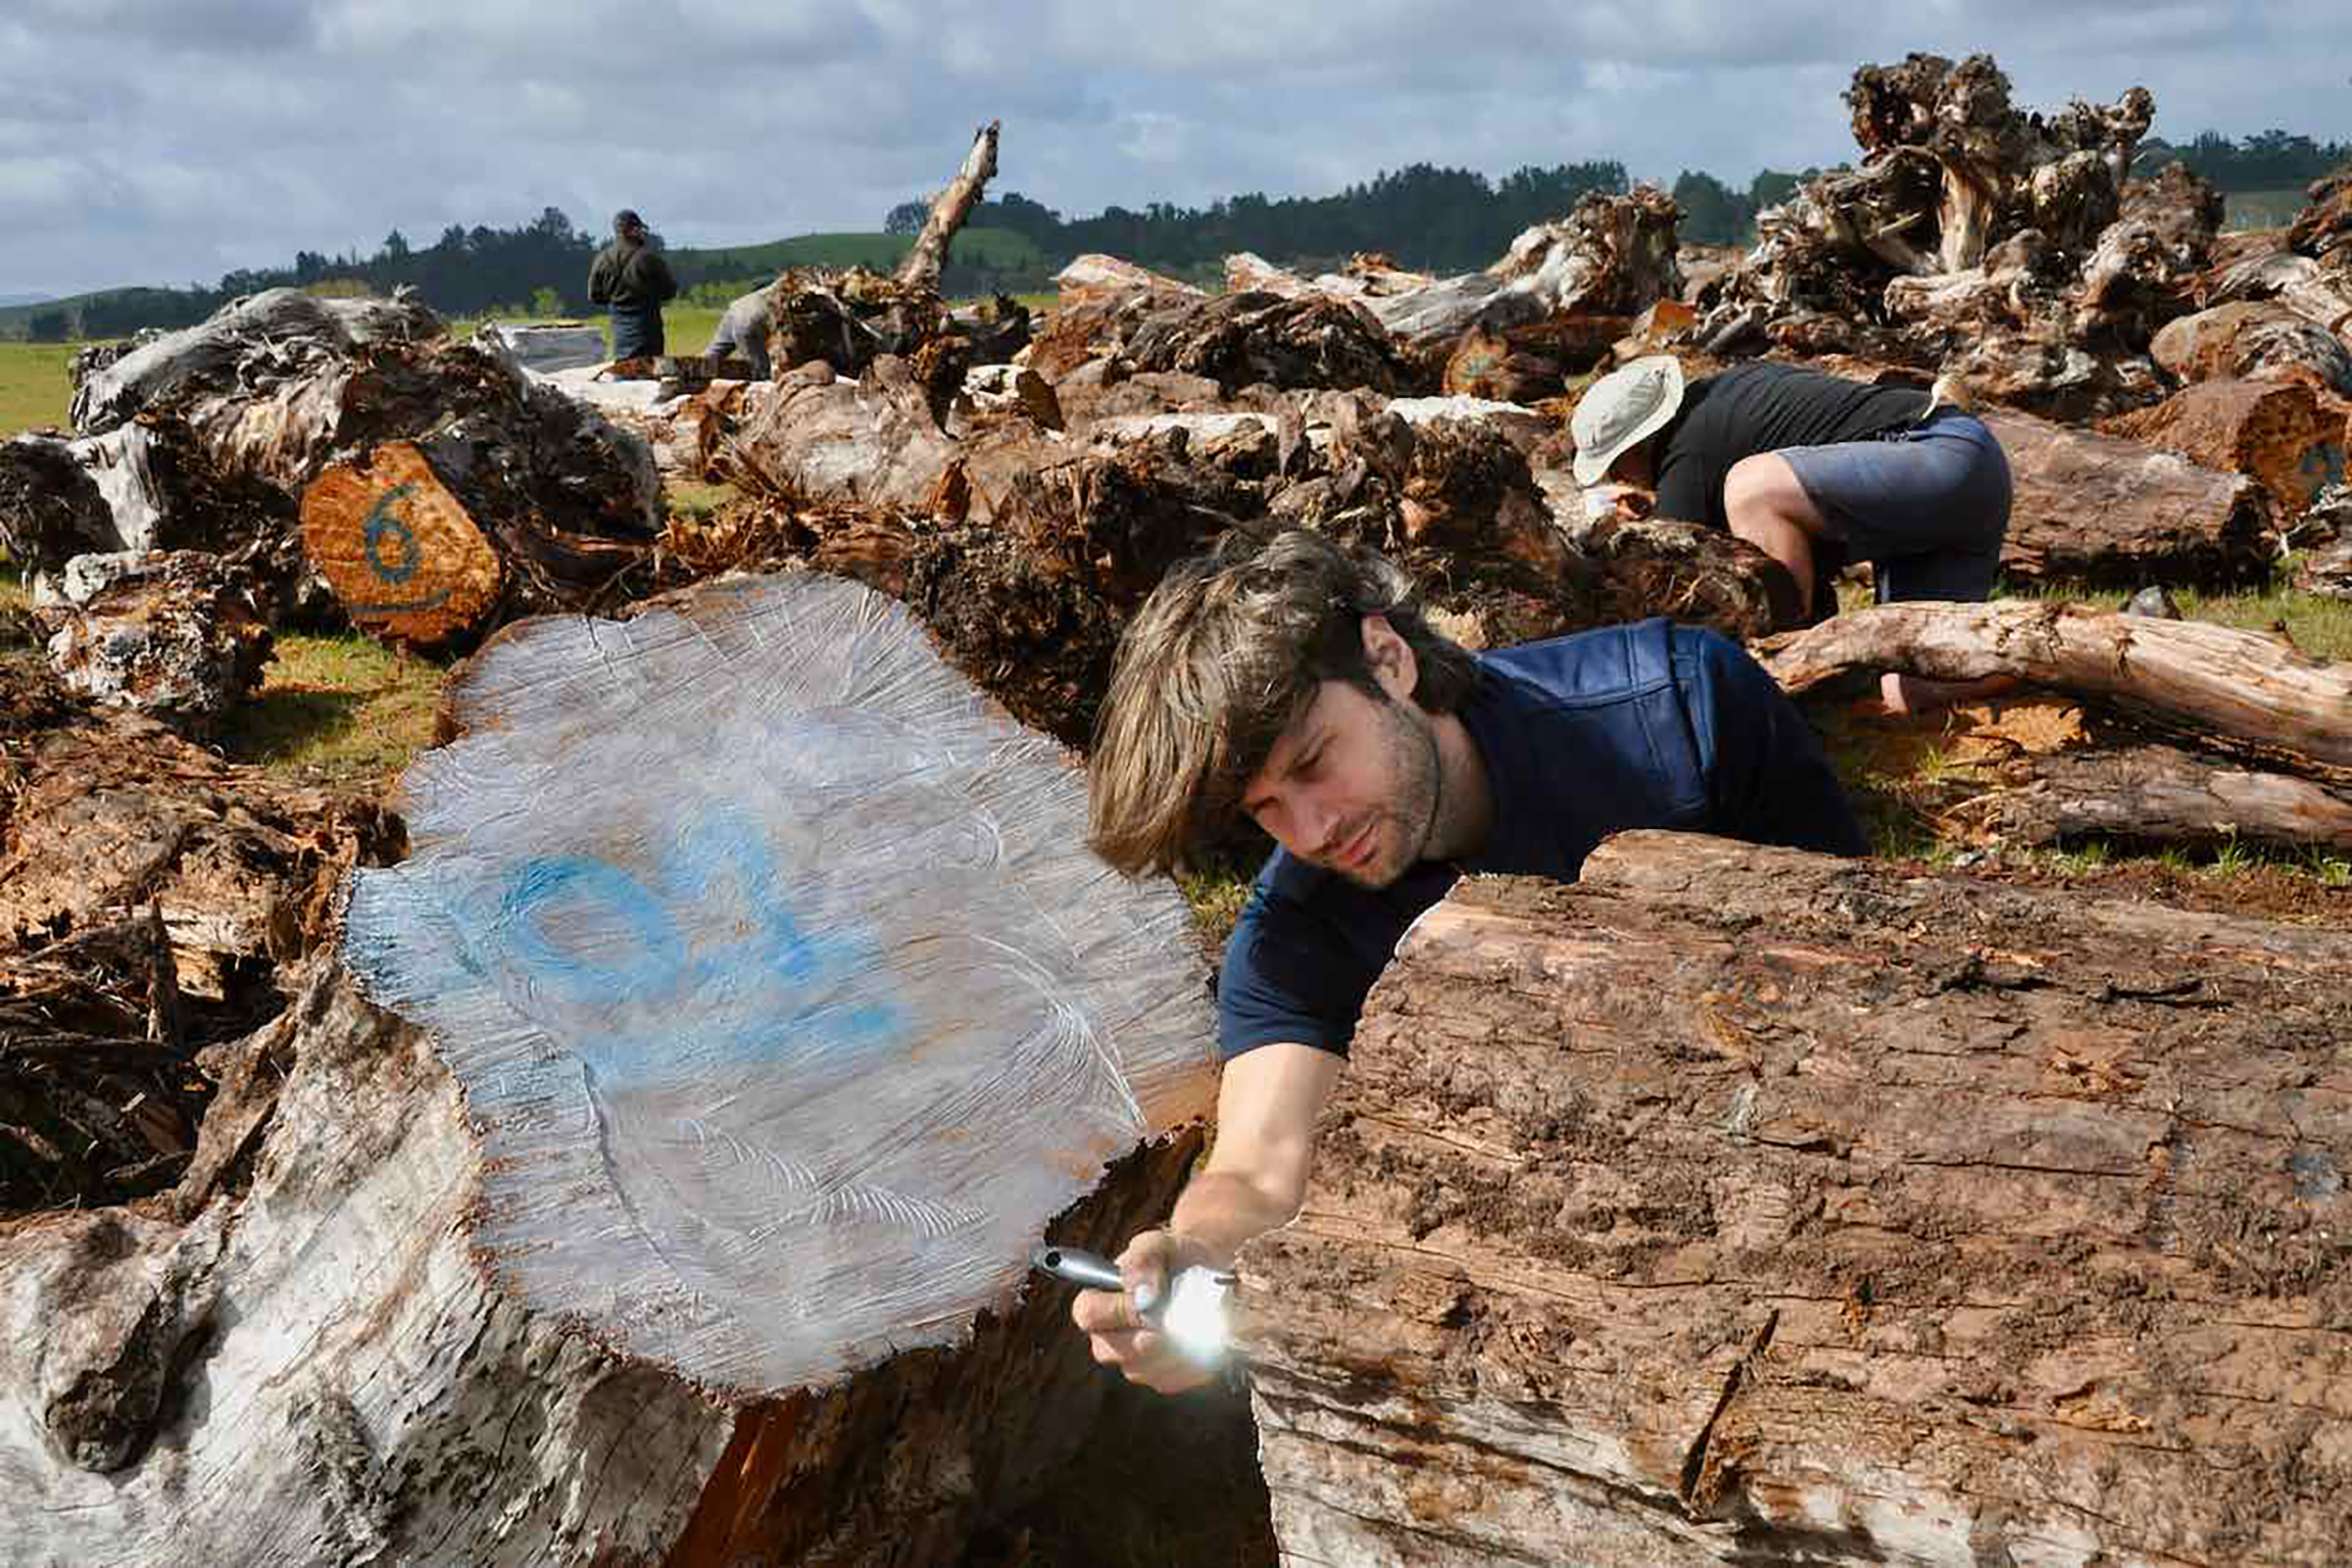 John-Mark Woolley from NIWA paints glue onto the cut faces of swamp kauri logs to preserve them from the weather. Photograph by Kate Evans.